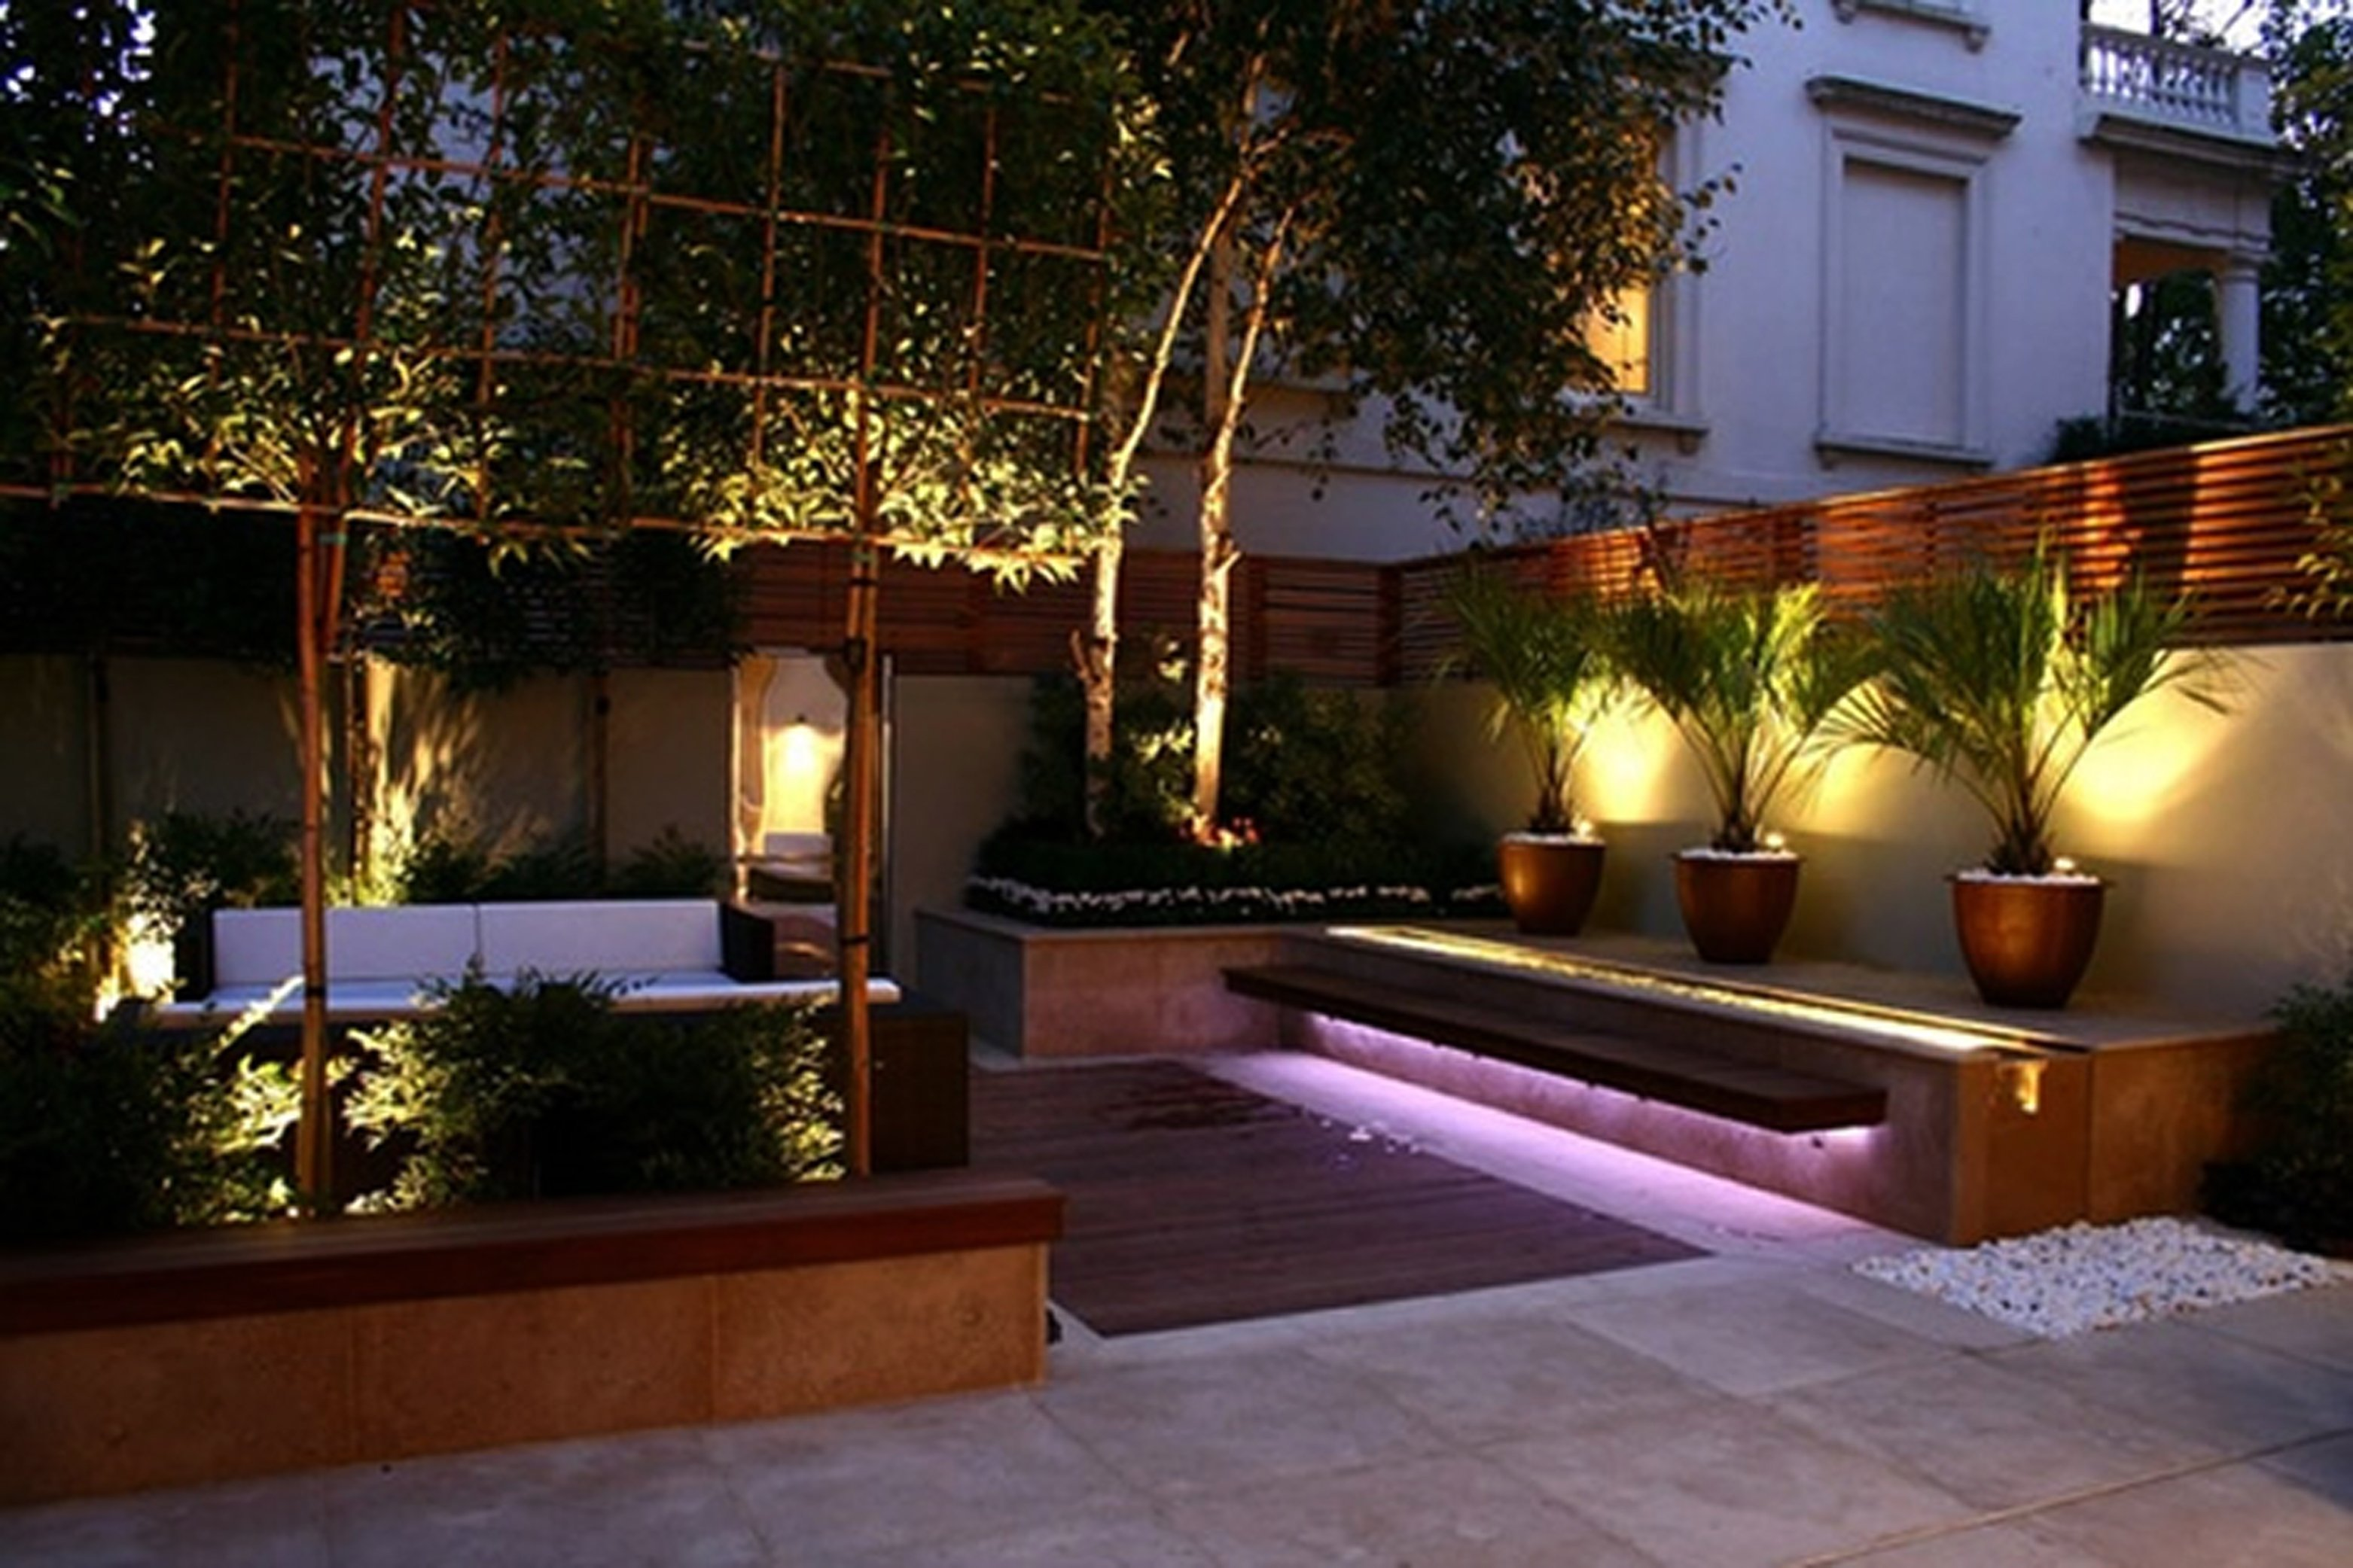 Ideas para decorar exteriores en primavera - Decorar patios exteriores ...